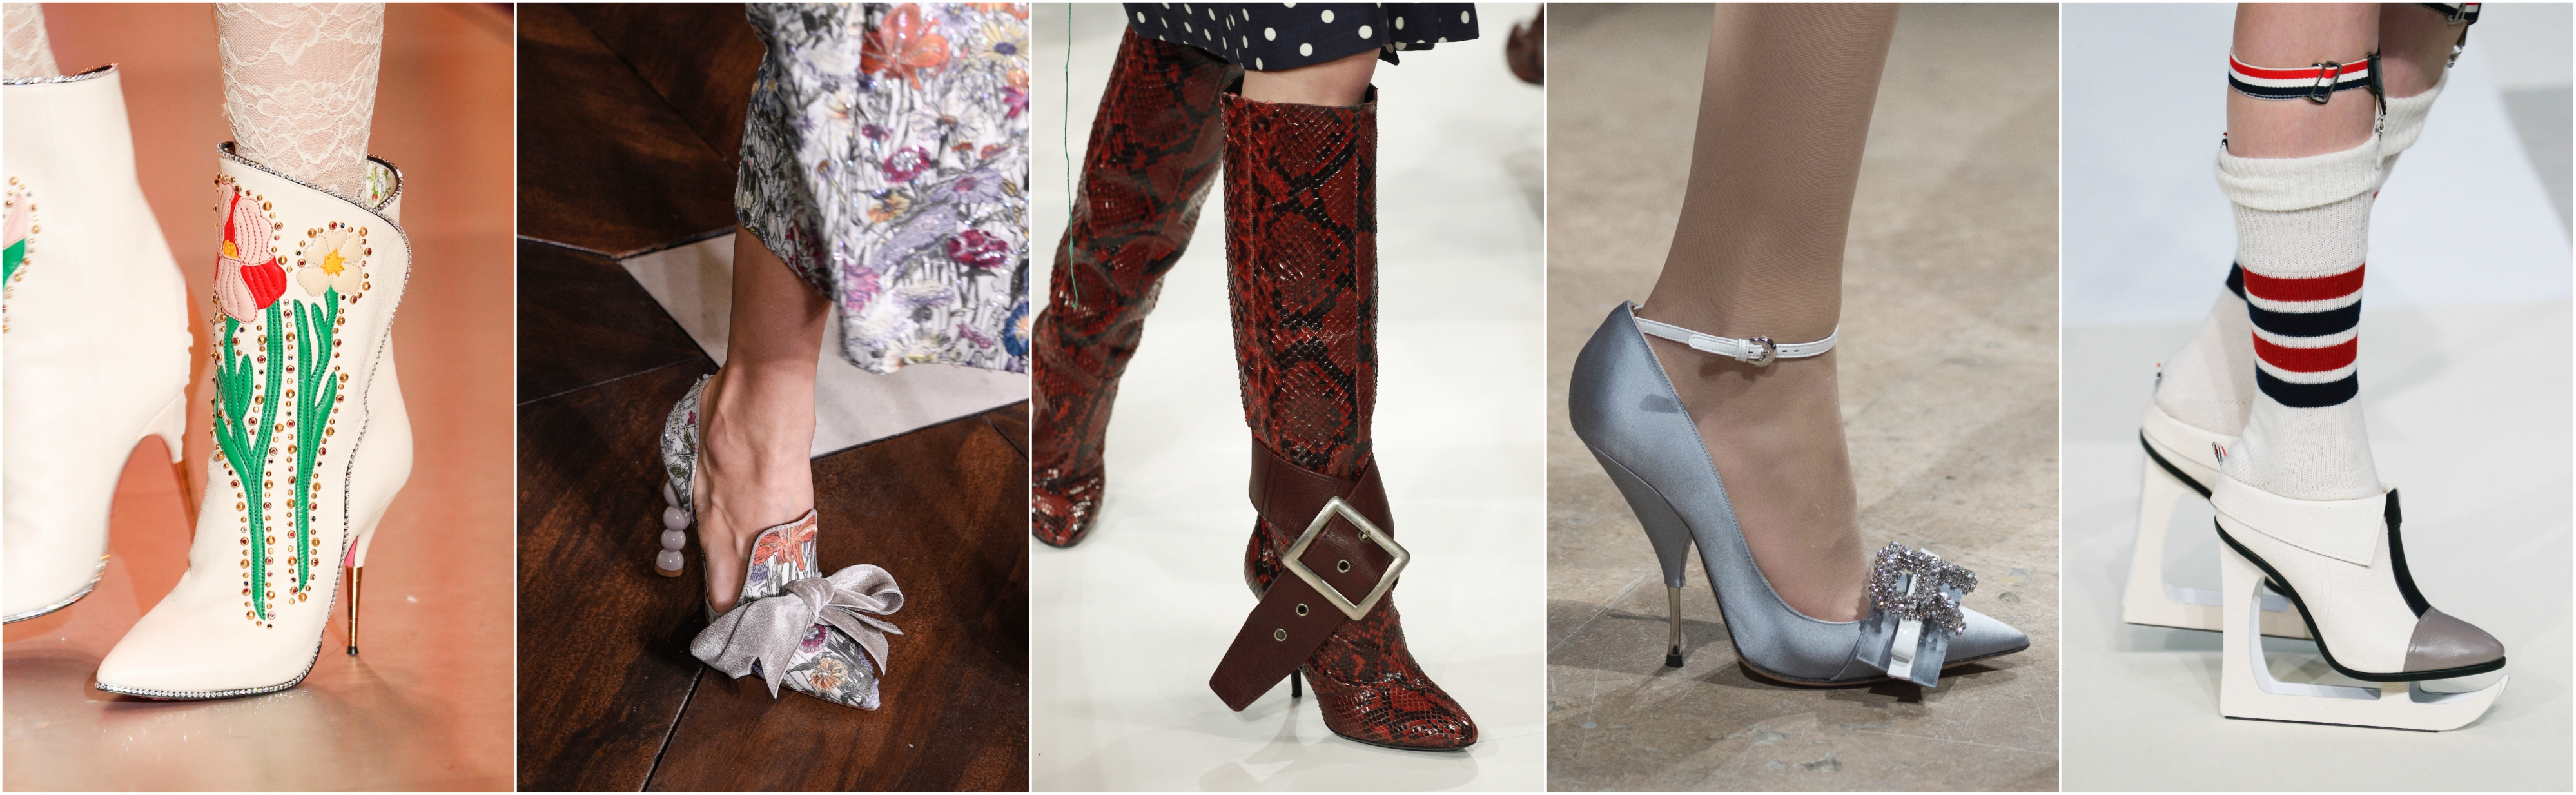 Photos: Vogue Runway | From L to R: Gucci, Tory Burch, Maison Margiela,  Rochas, Thom Browne